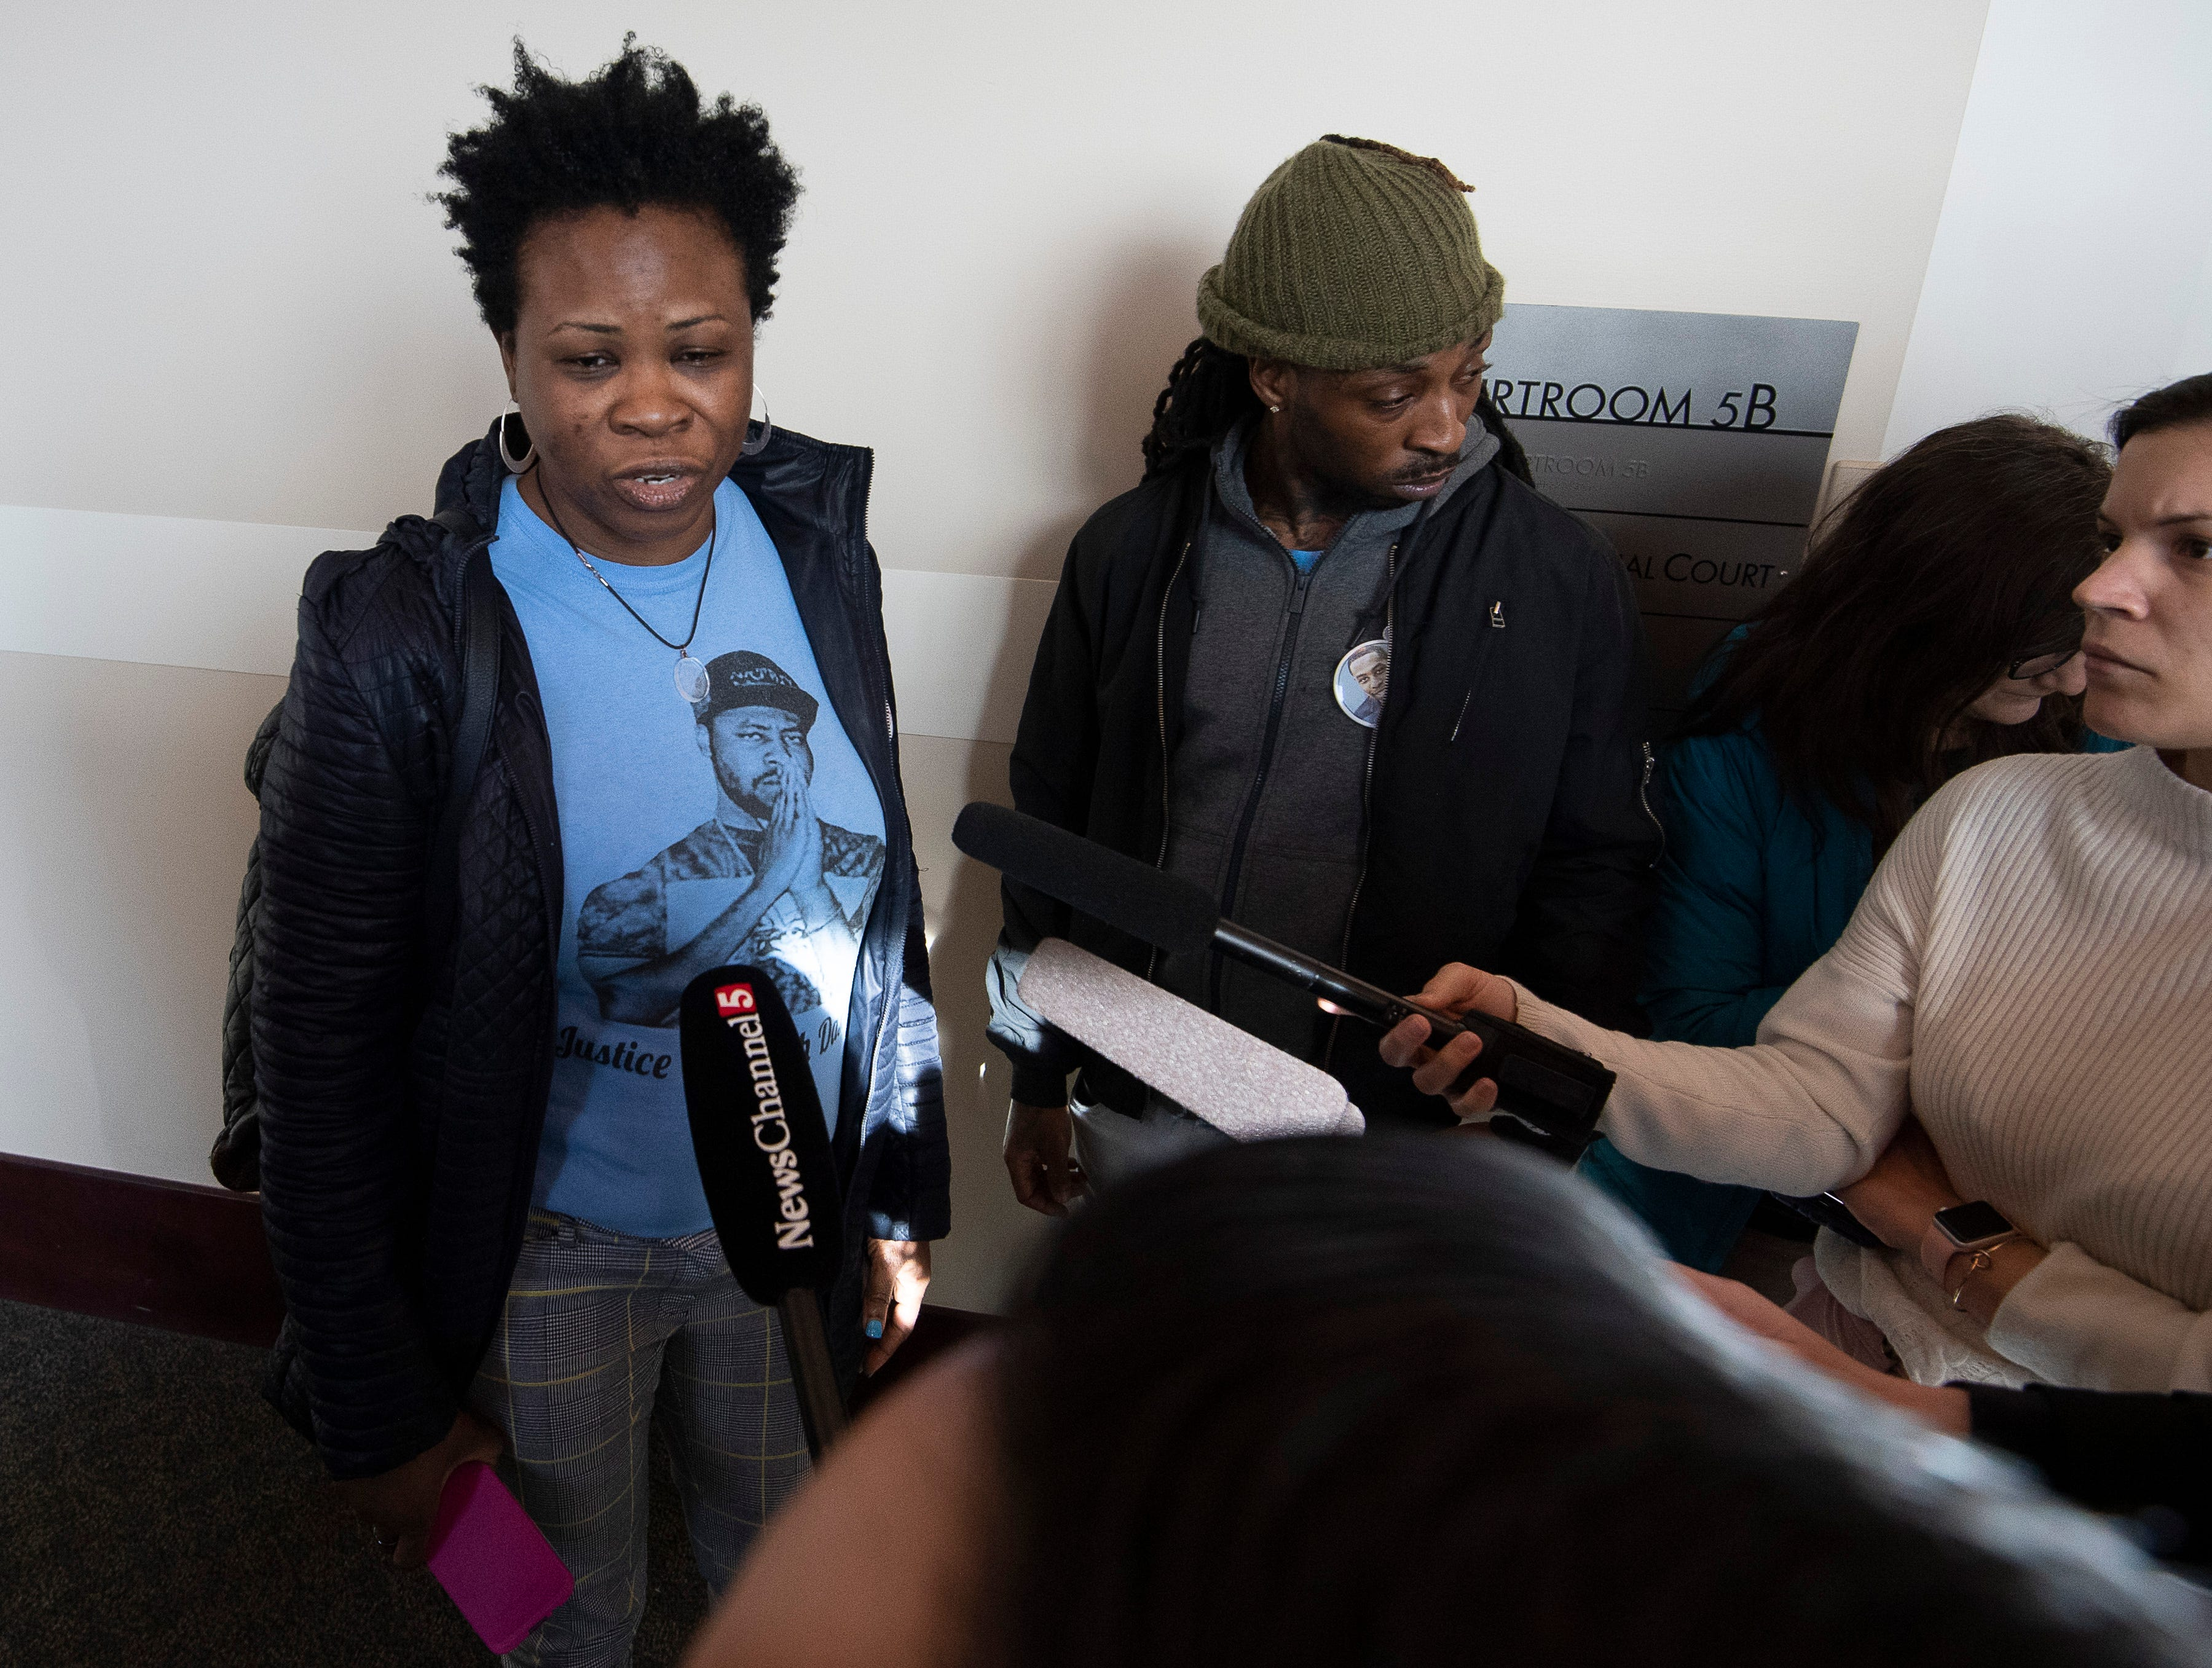 Shaundelle Brooks, mother of Waffle House victim Akilah Dasilva answers questions from the media after Travis Reinking pleaded not guilty to charges related to a mass shooting that killed four people and injured several others at a Waffle House last year during his arraignment hearing at Justice A. A. Birch Building Wednesday, Feb. 13, 2019 in Nashville, Tenn.